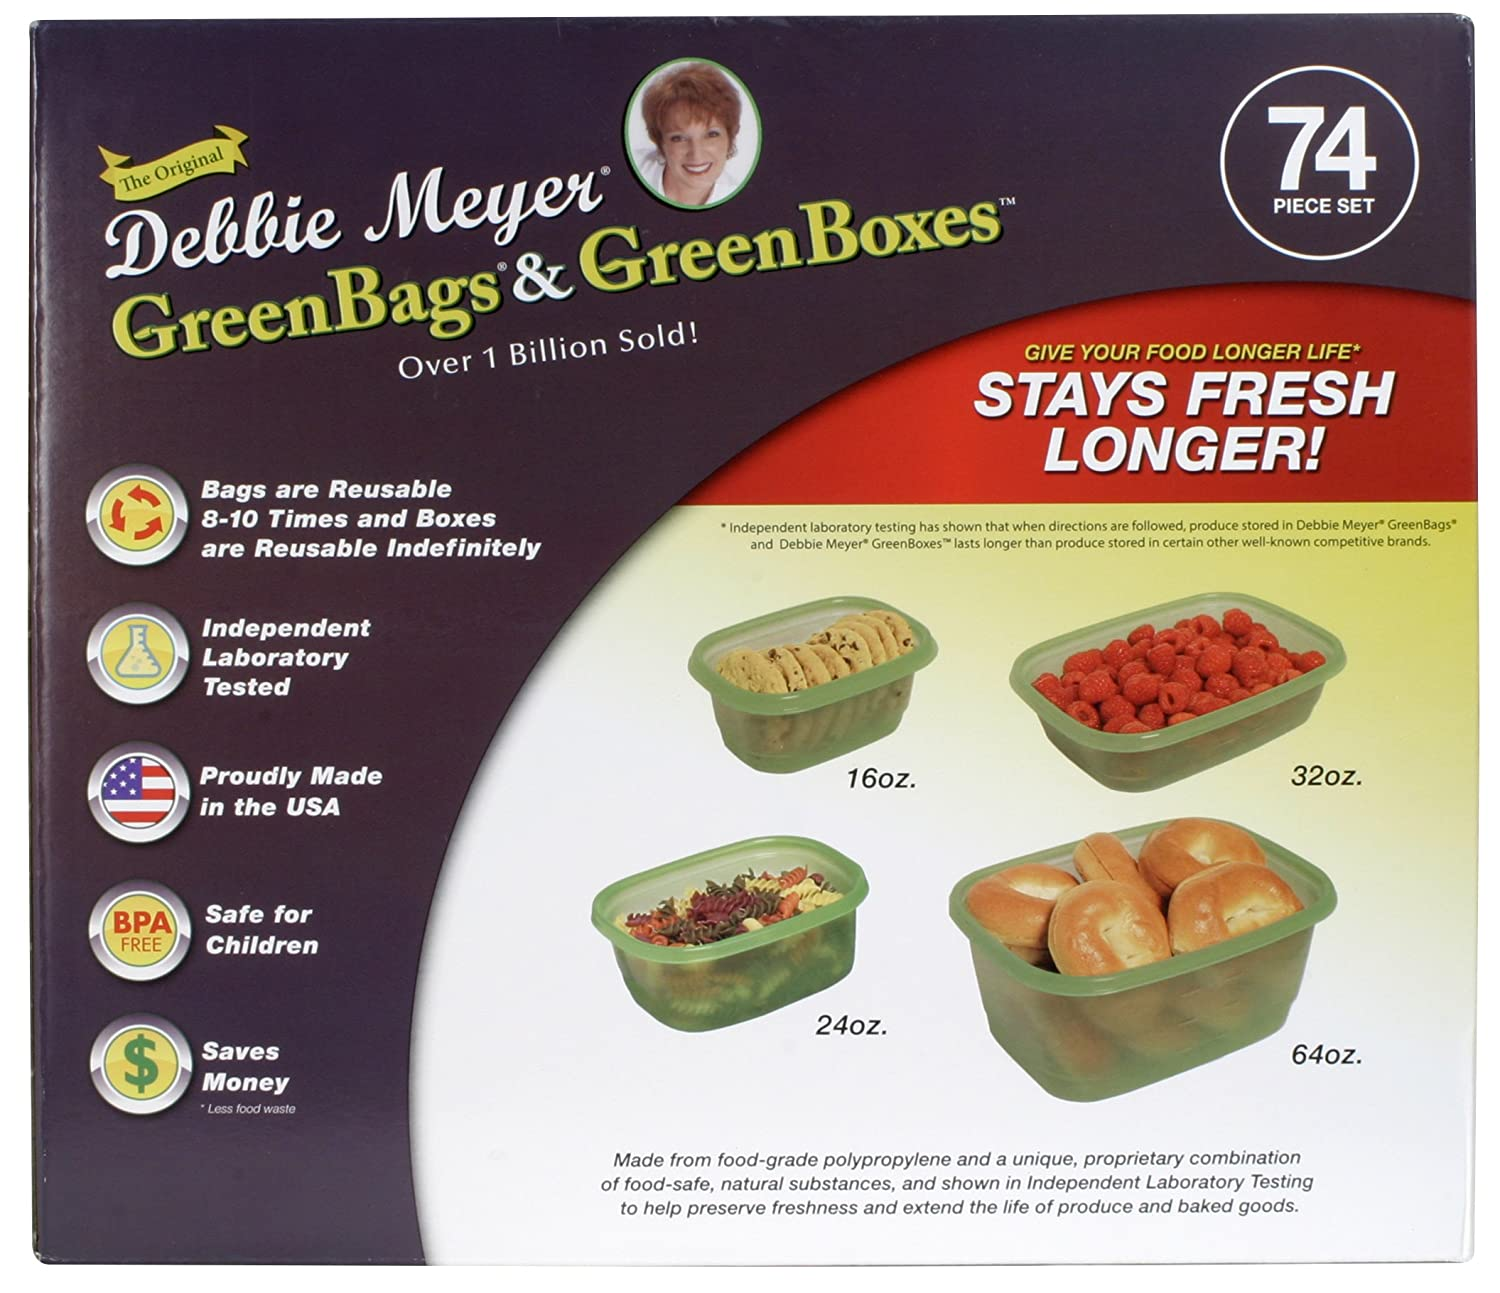 Amazon.com Debbie Meyer Greenbox Greenbag Set (74 Piece Green) Kitchen u0026 Dining  sc 1 st  Amazon.com & Amazon.com: Debbie Meyer Greenbox Greenbag Set (74 Piece Green ...